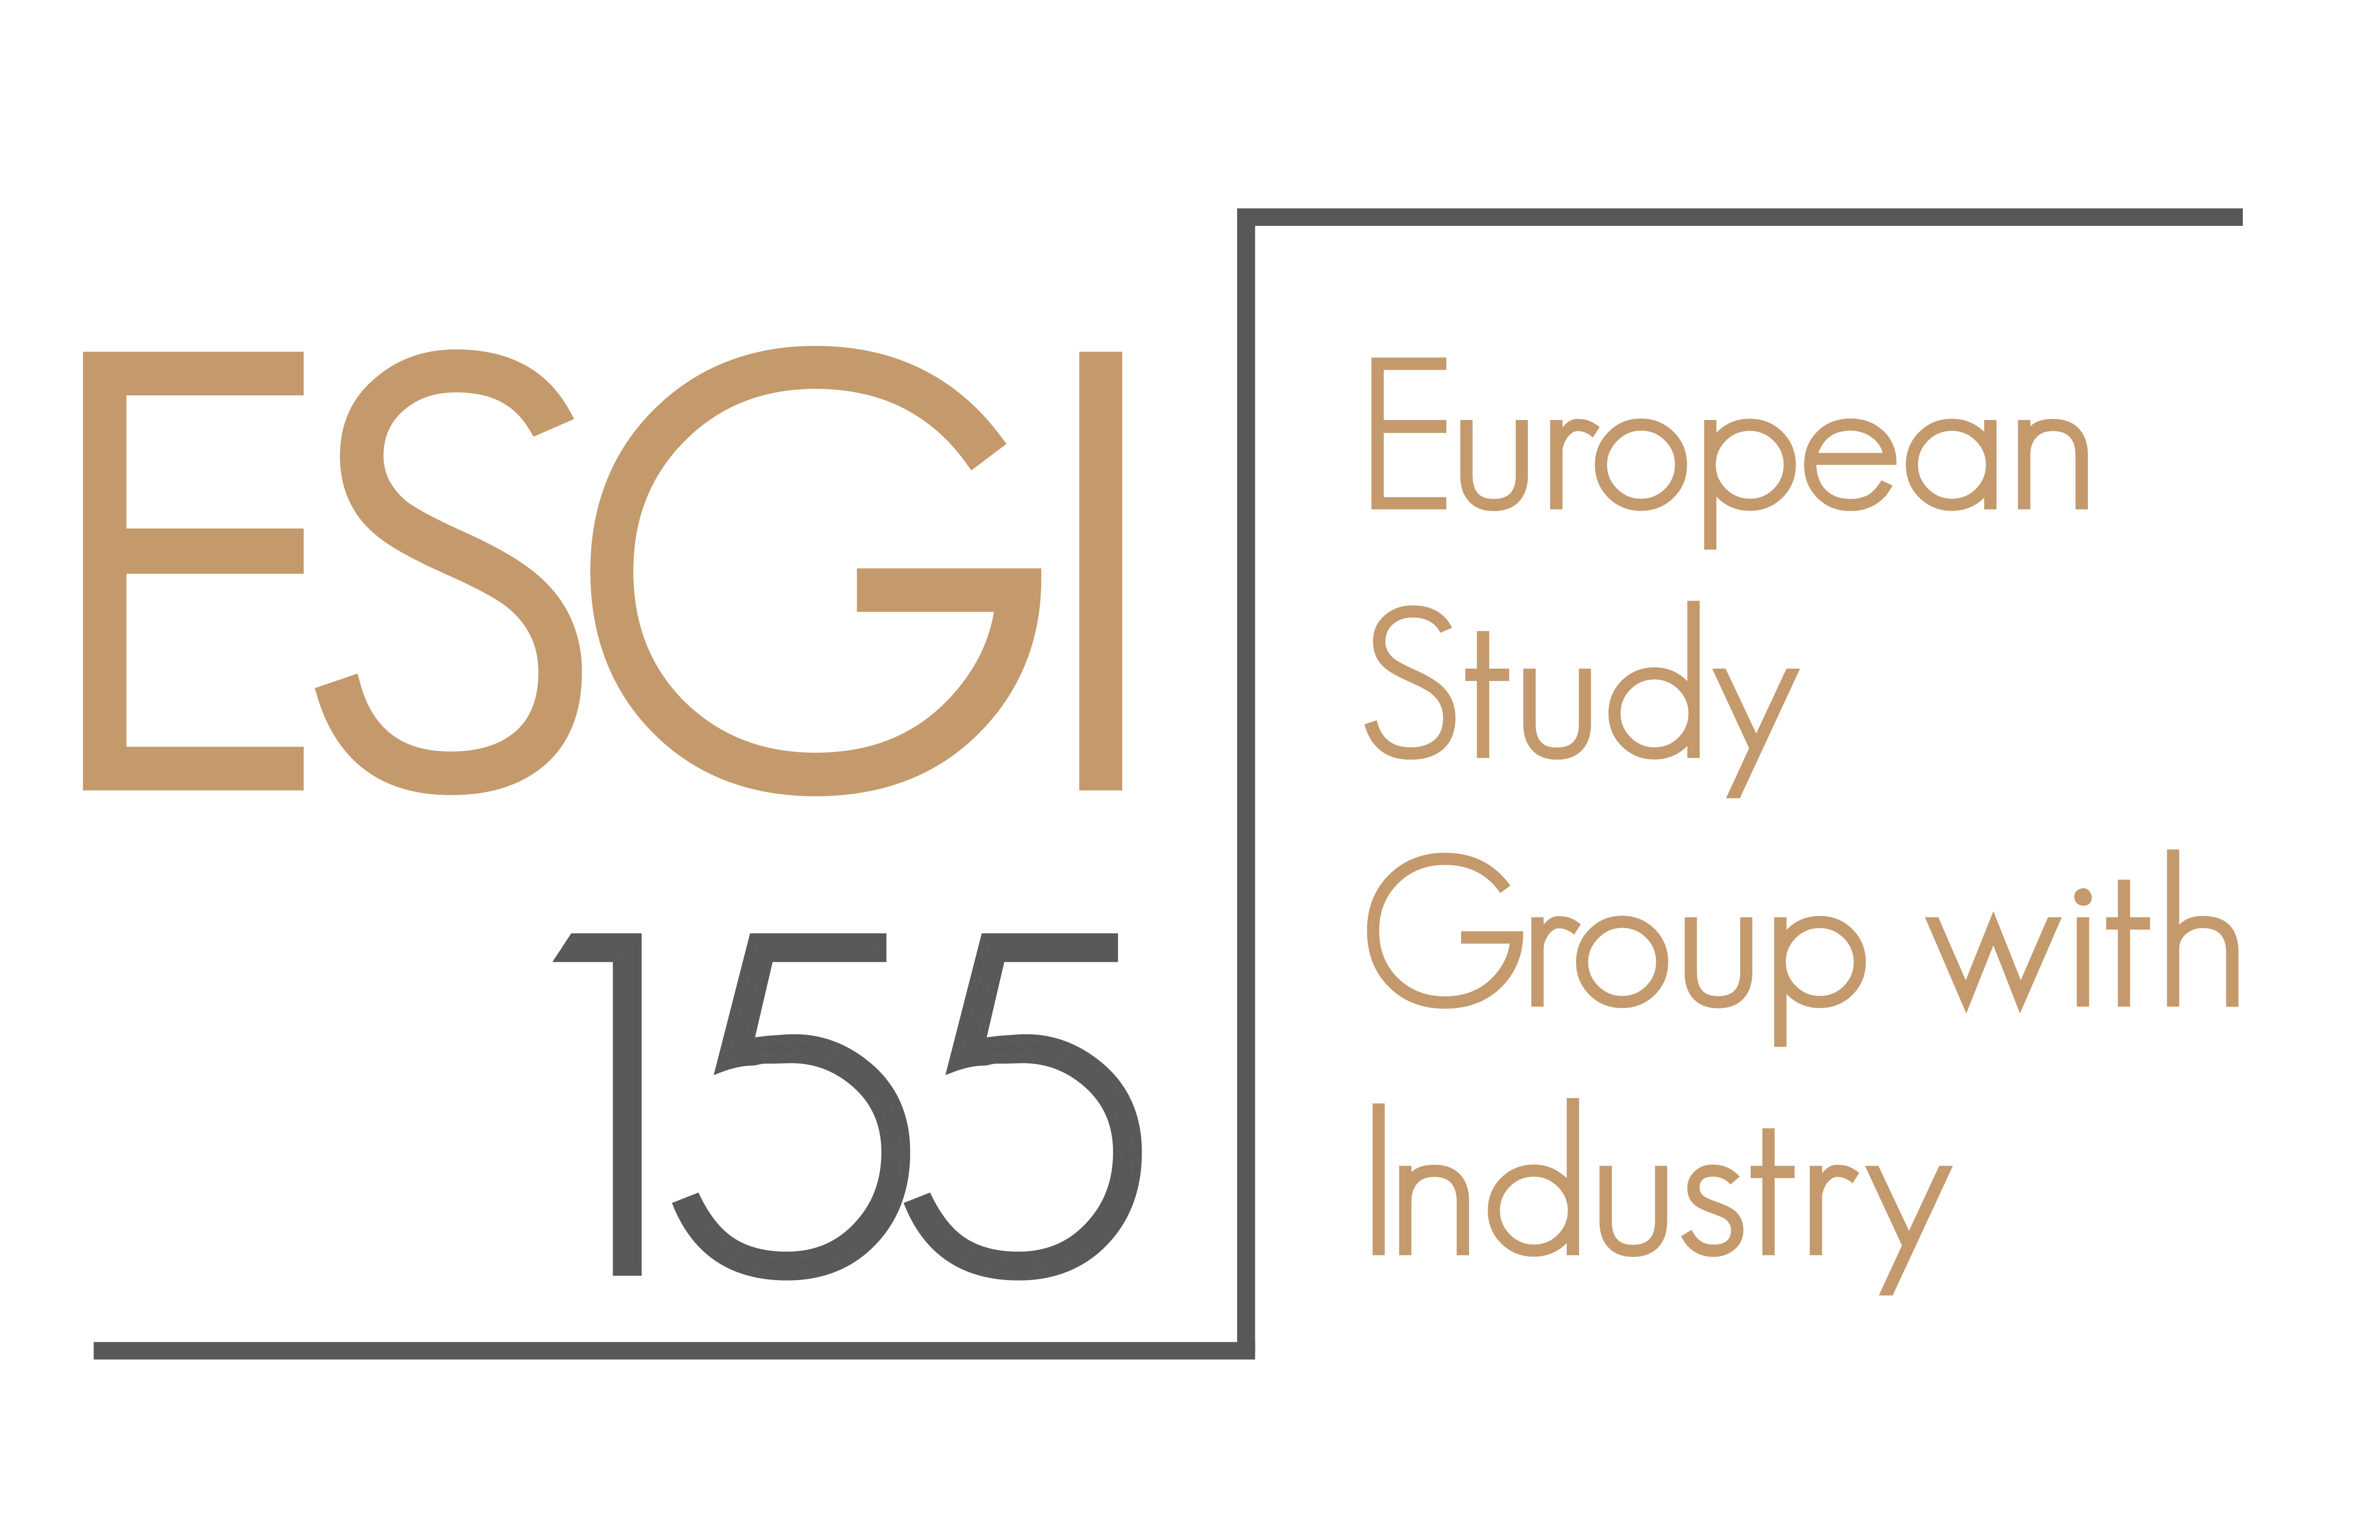 ESGI – European Study Group with Industry